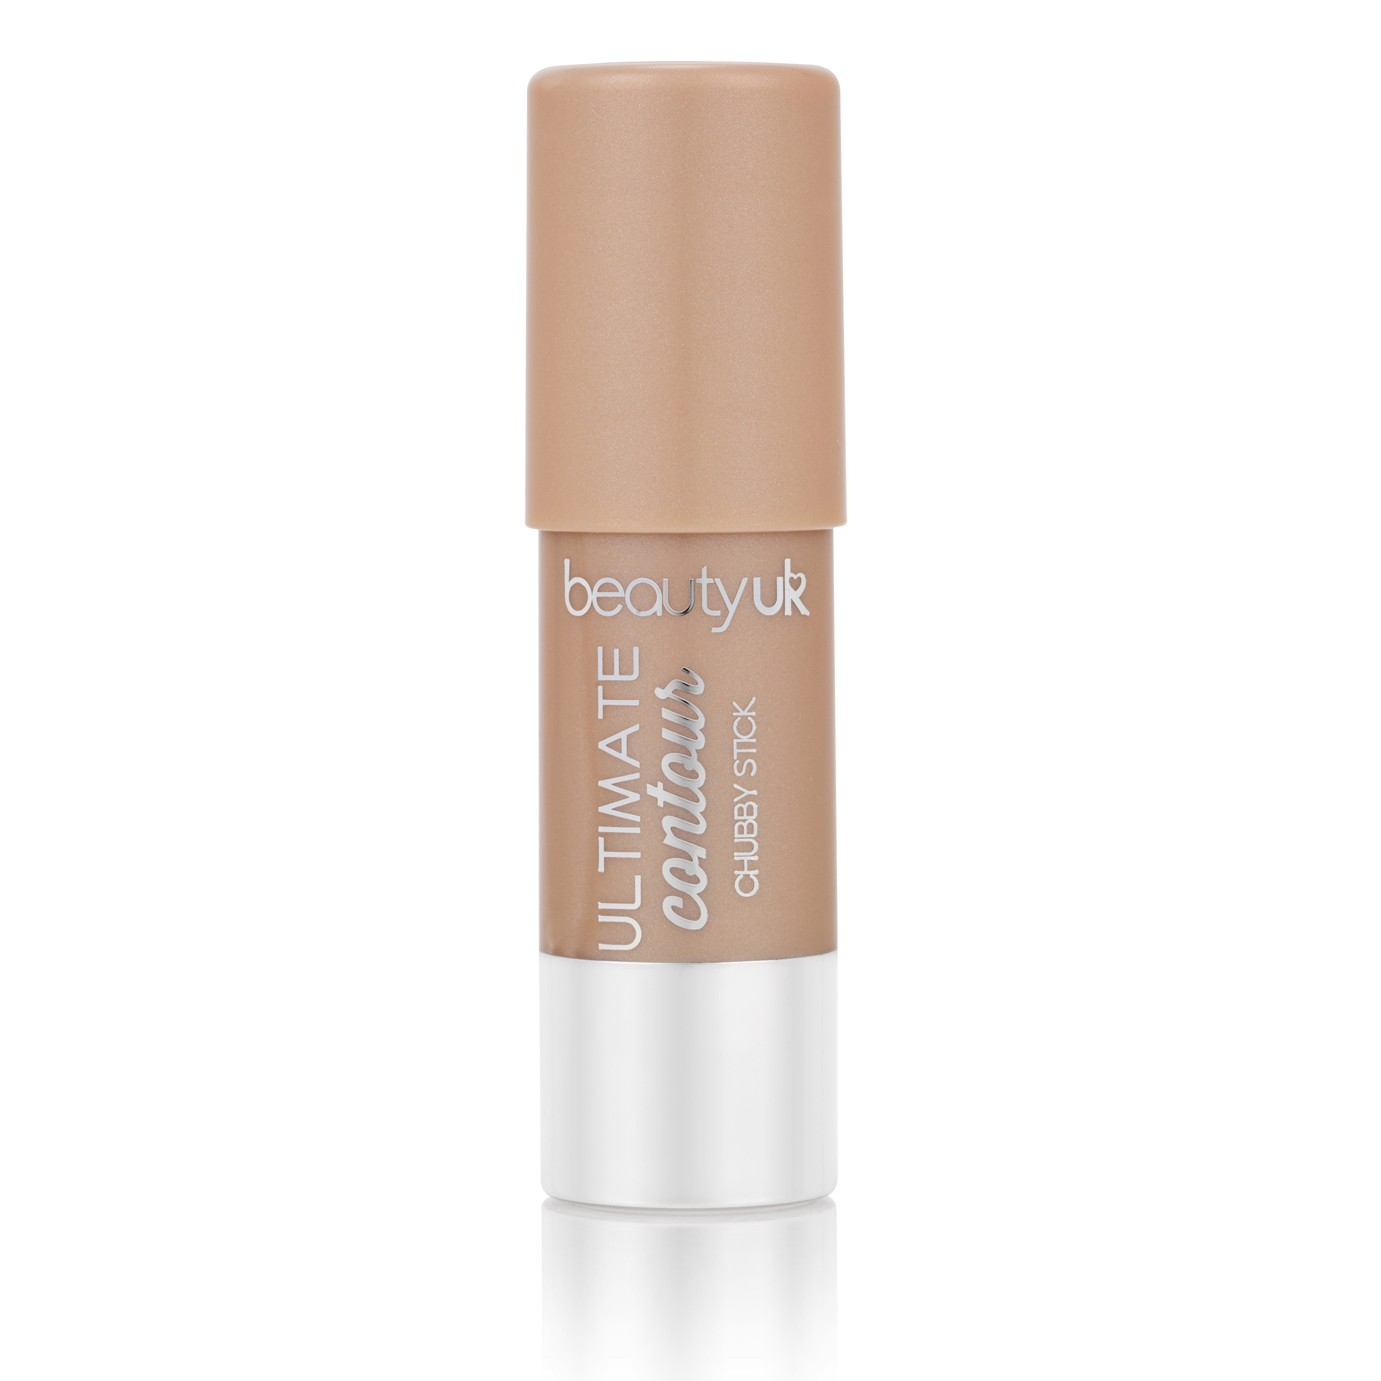 Highlighter-Stift - Ultimate Contour Chubby Stick